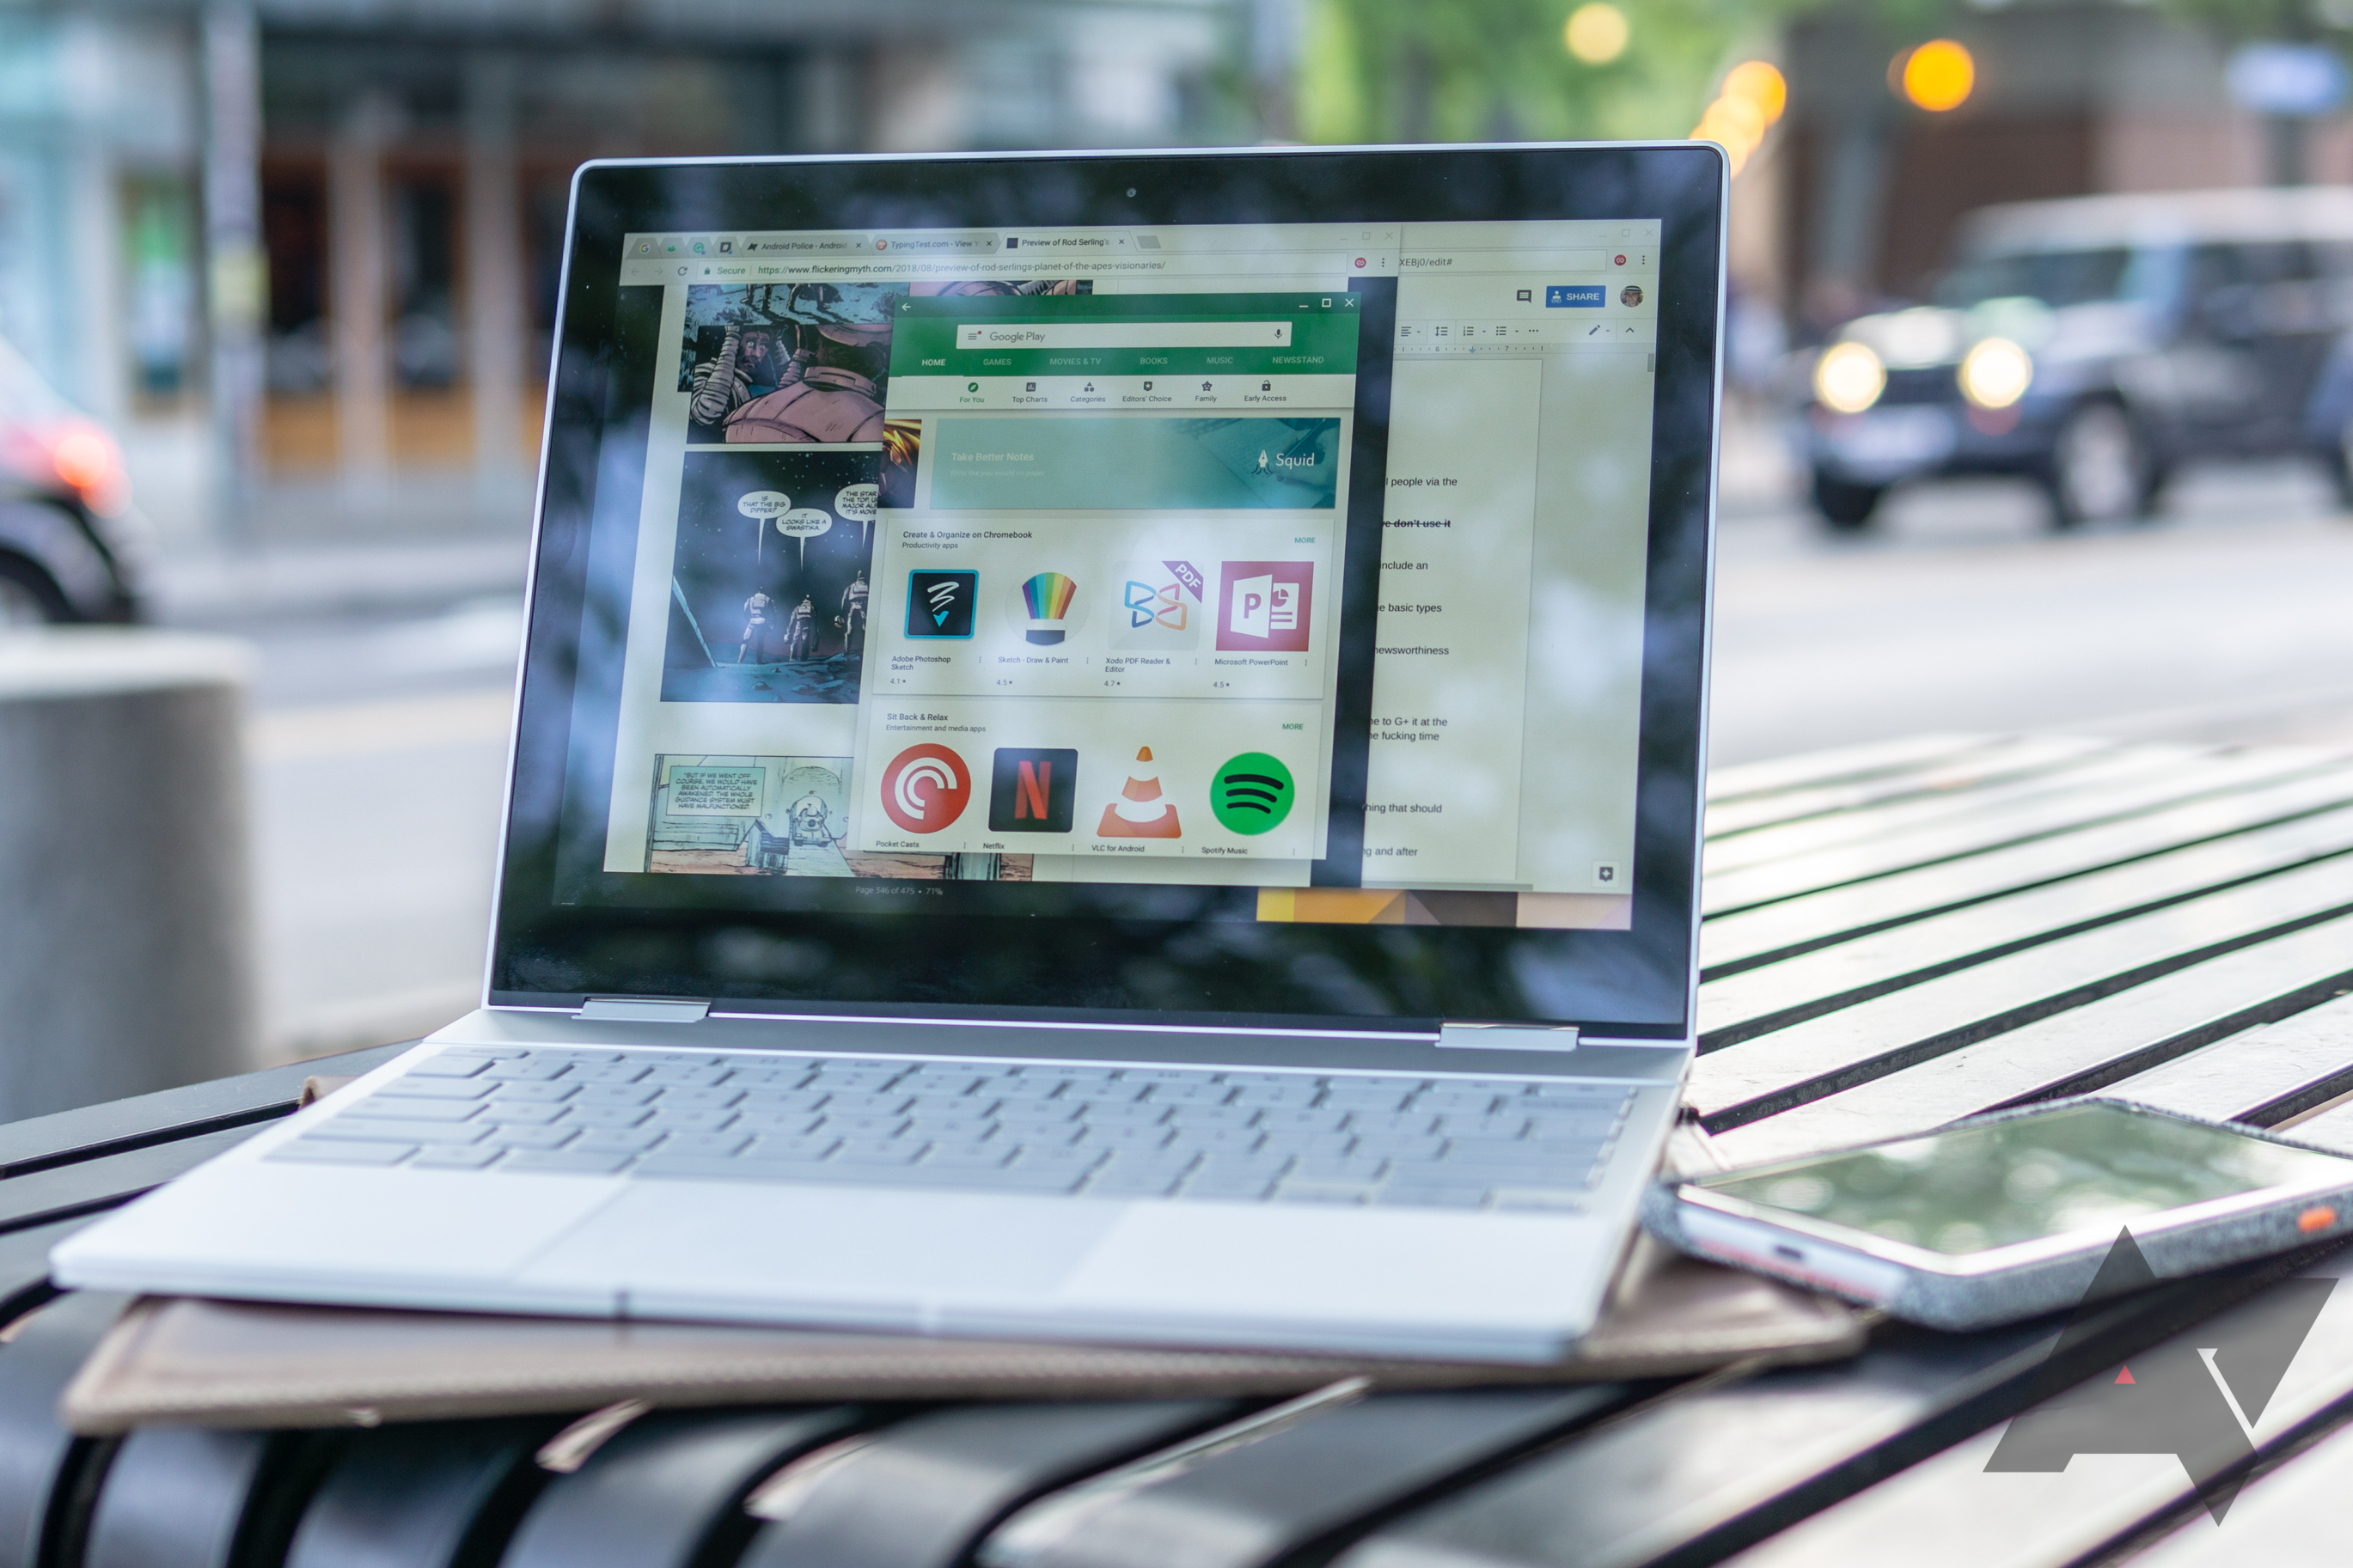 Chrome OS might get a touchpad gesture to move between virtual desktops